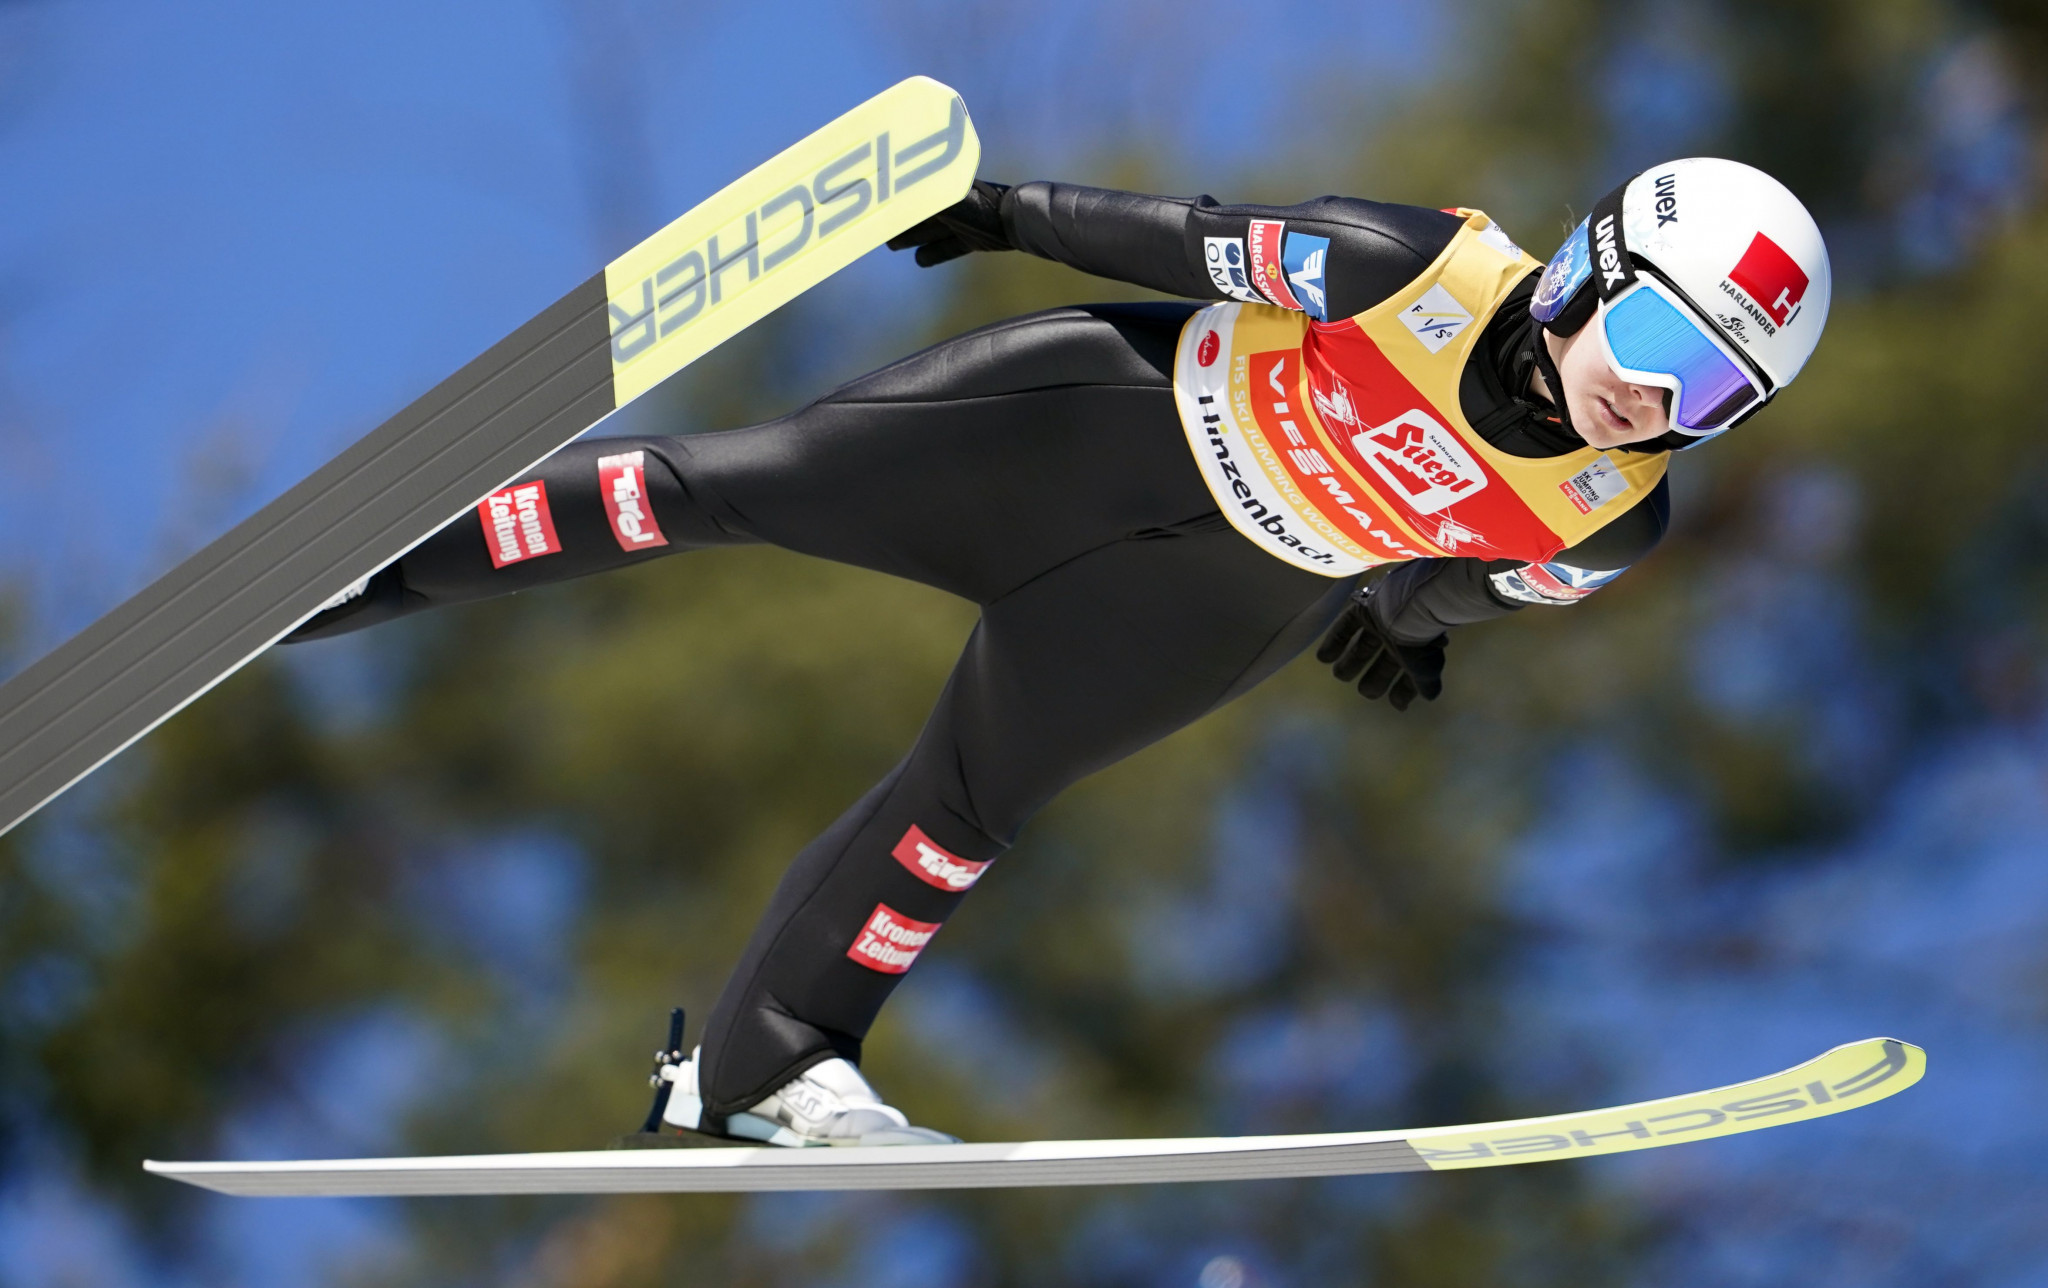 Chiara Hölzl continued her winning streak at the FIS Ski Jumping World Cup event in Hinzenbach ©Getty Images